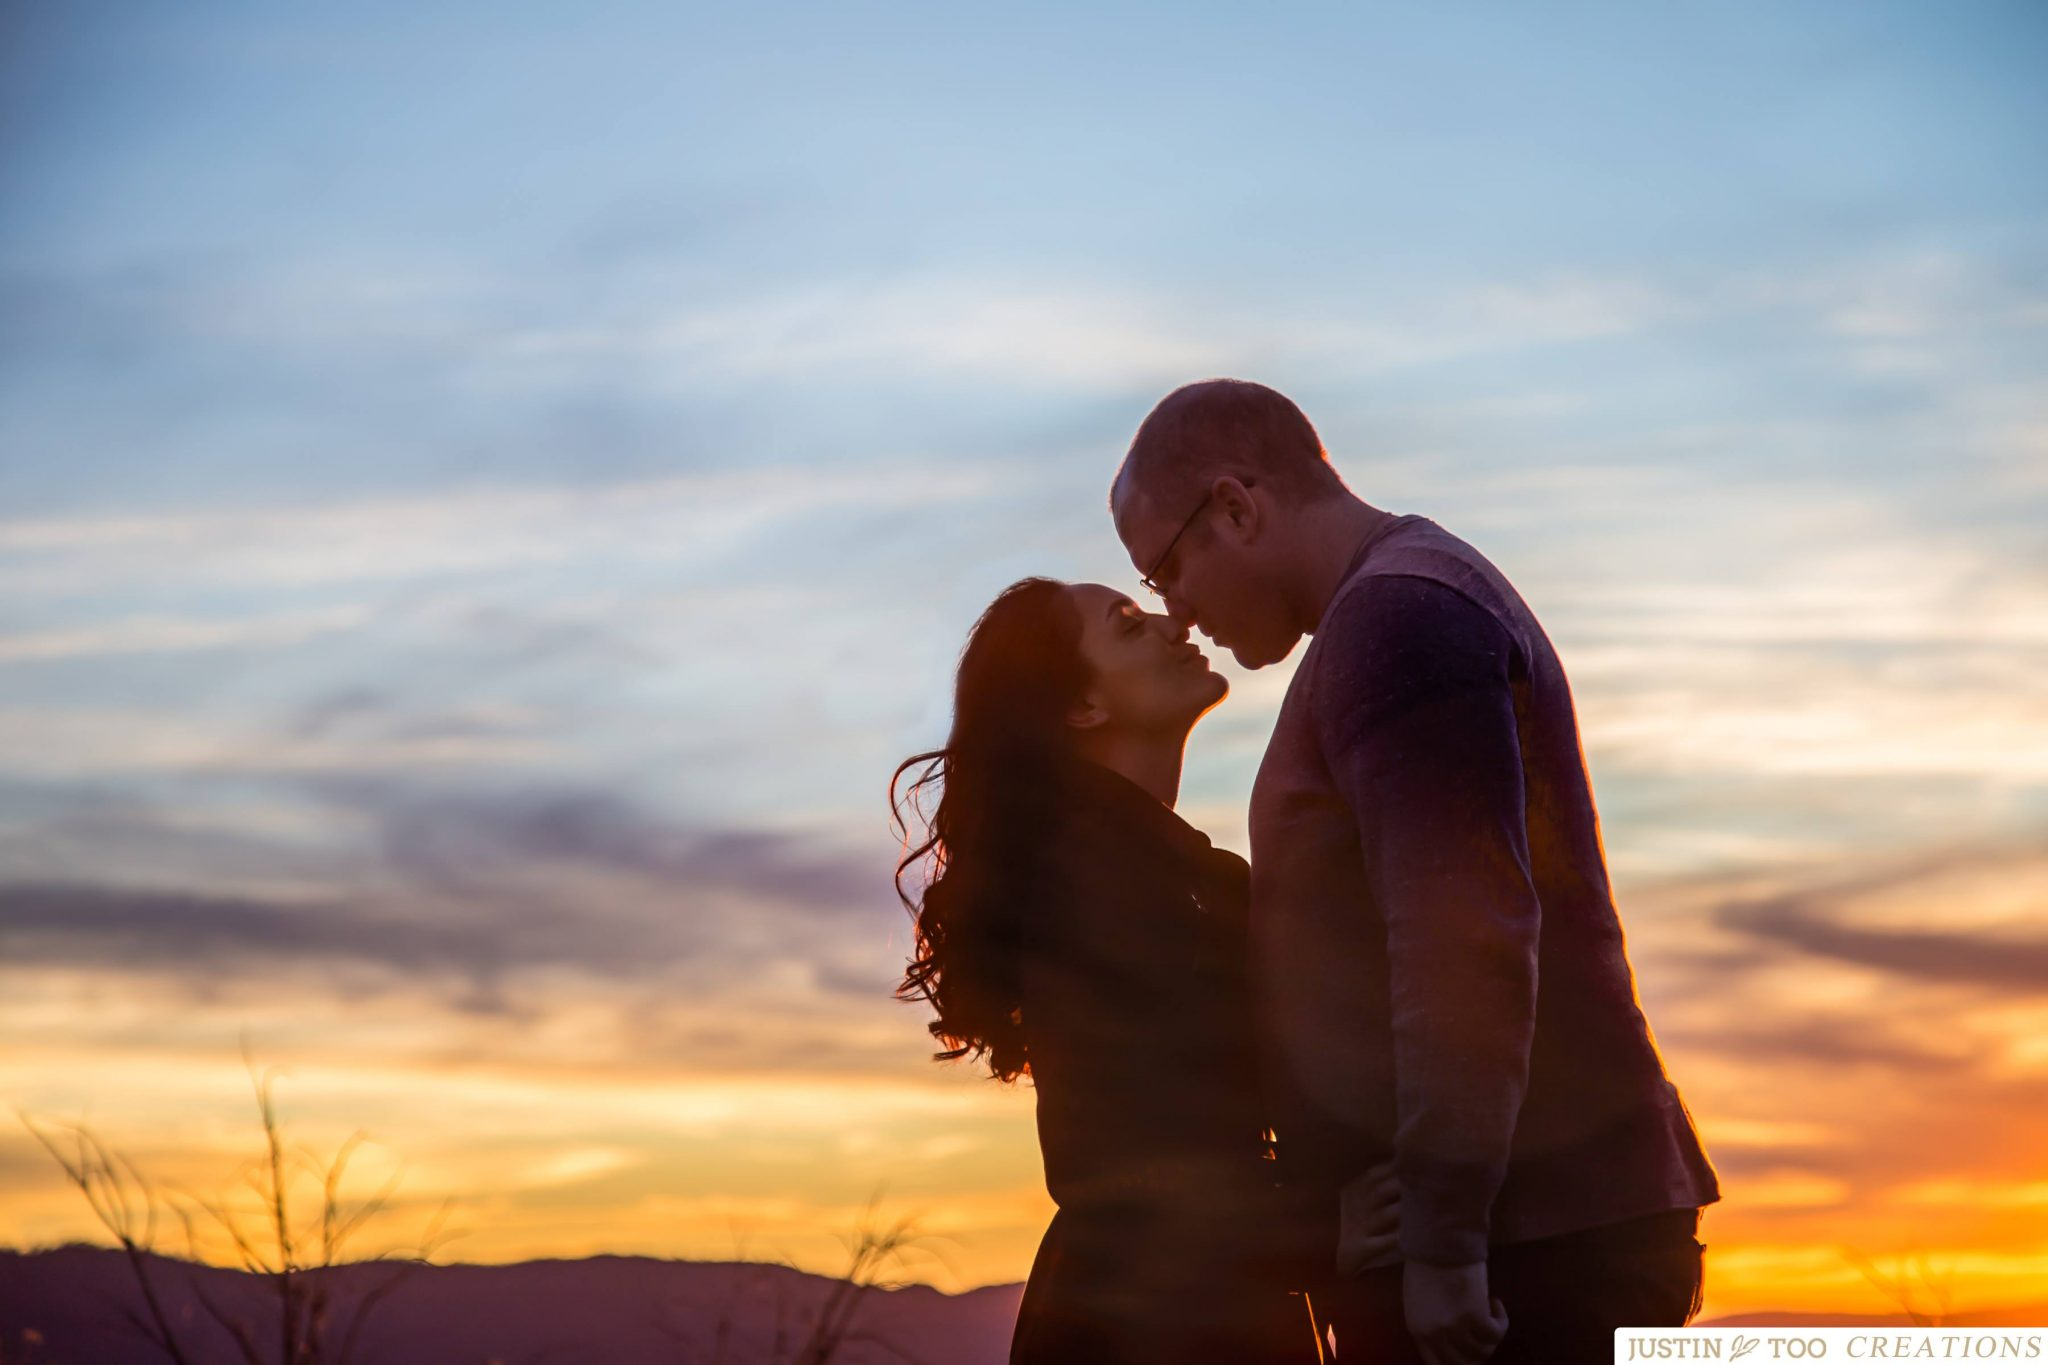 couples photography, sunset photography